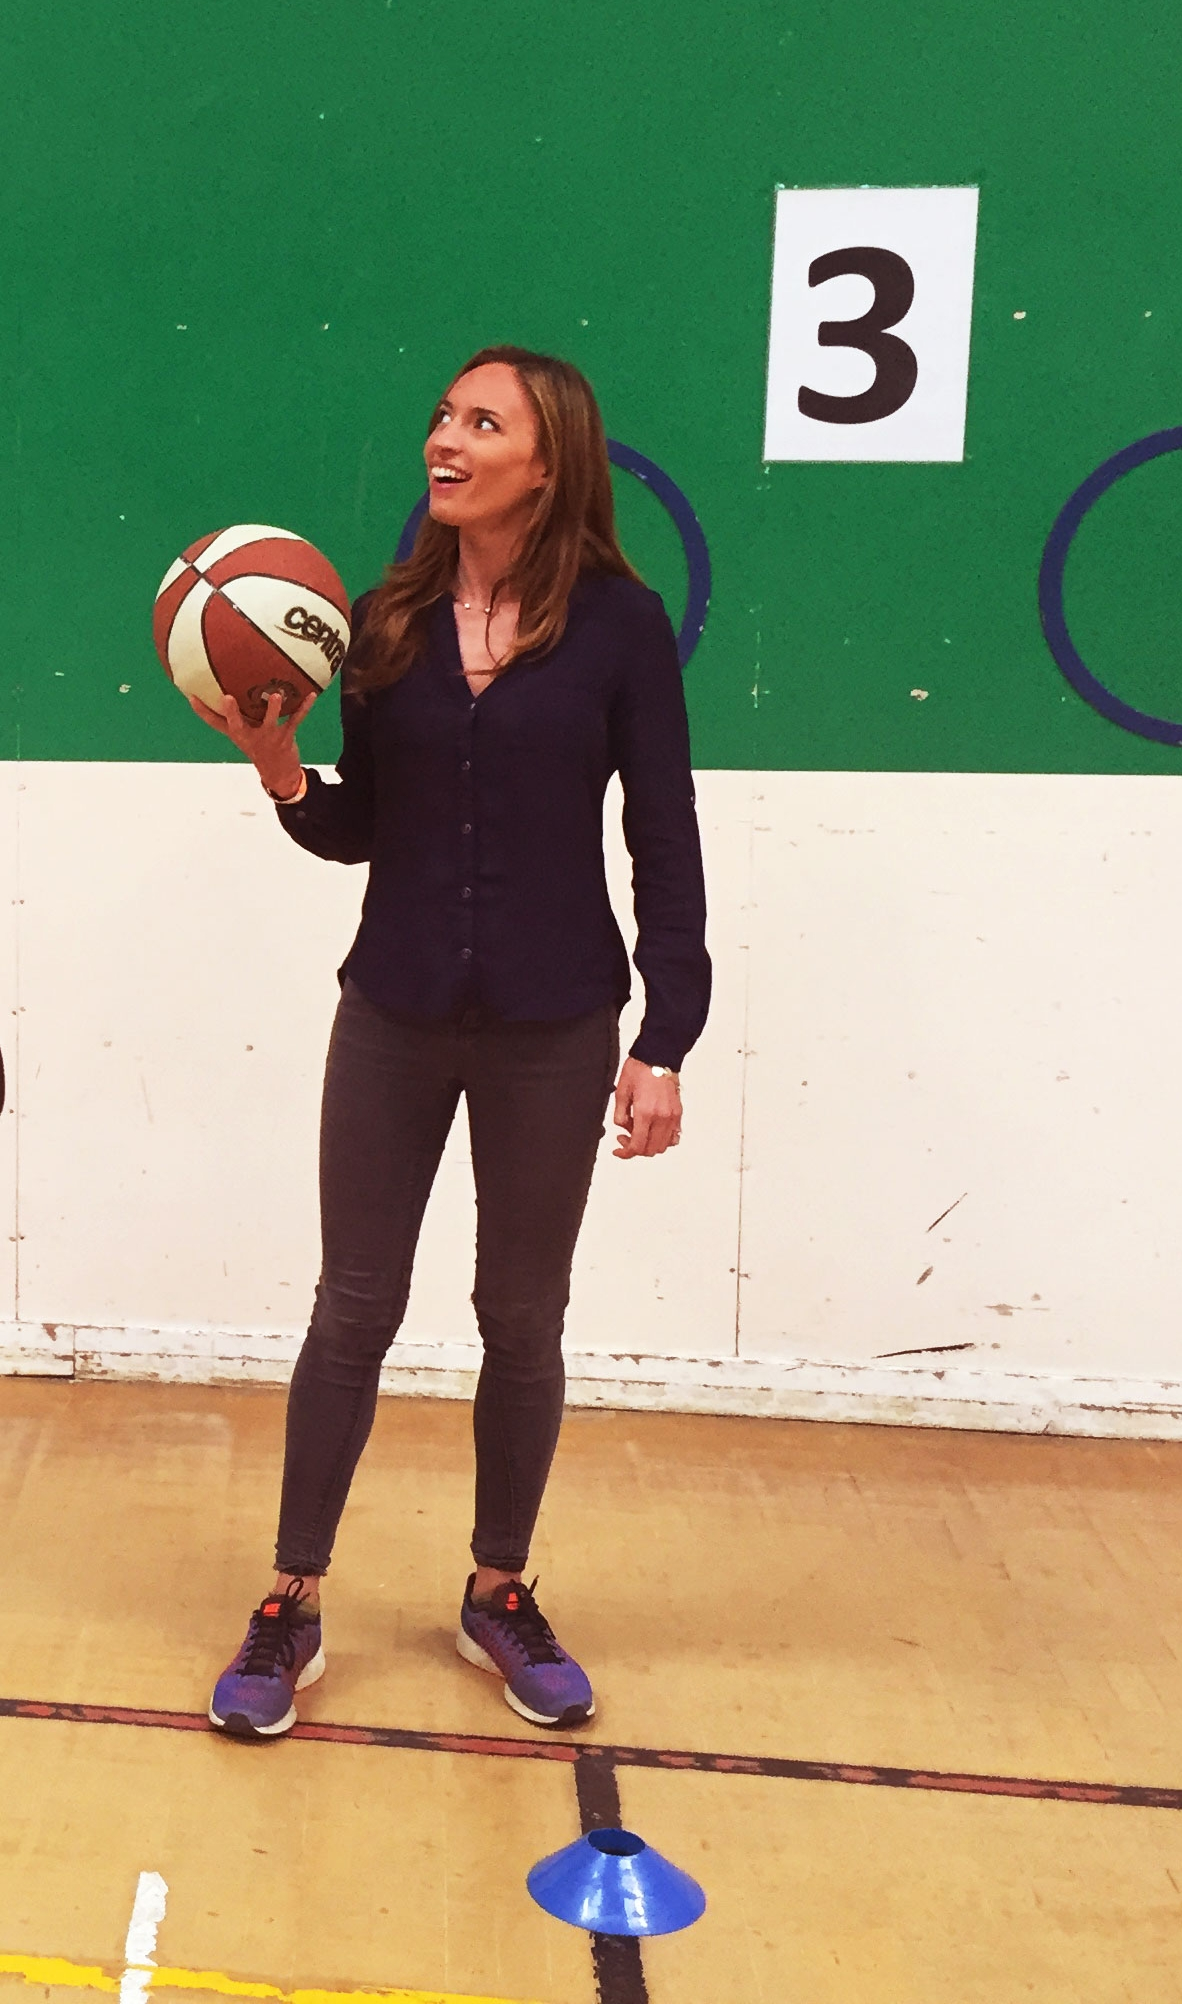 Bonita at a school particapating in a Play for Change sport programme